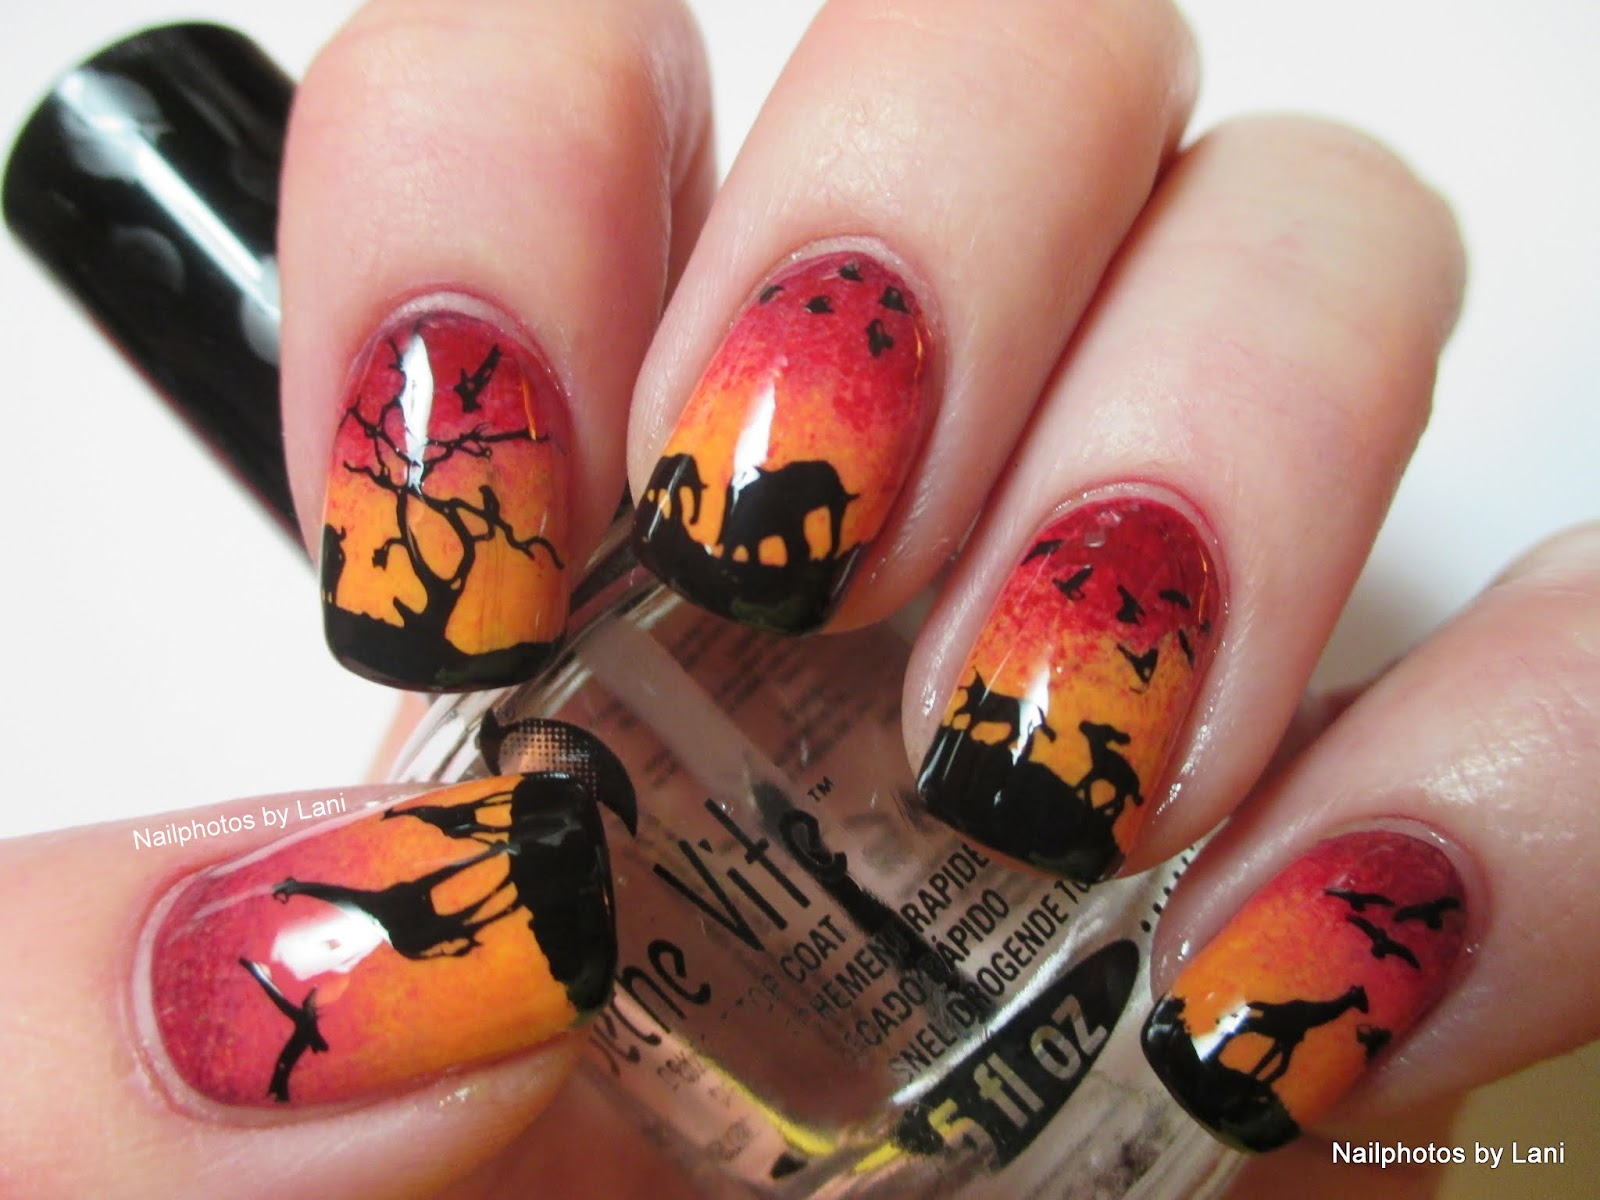 Image result for protect wildlife nail art